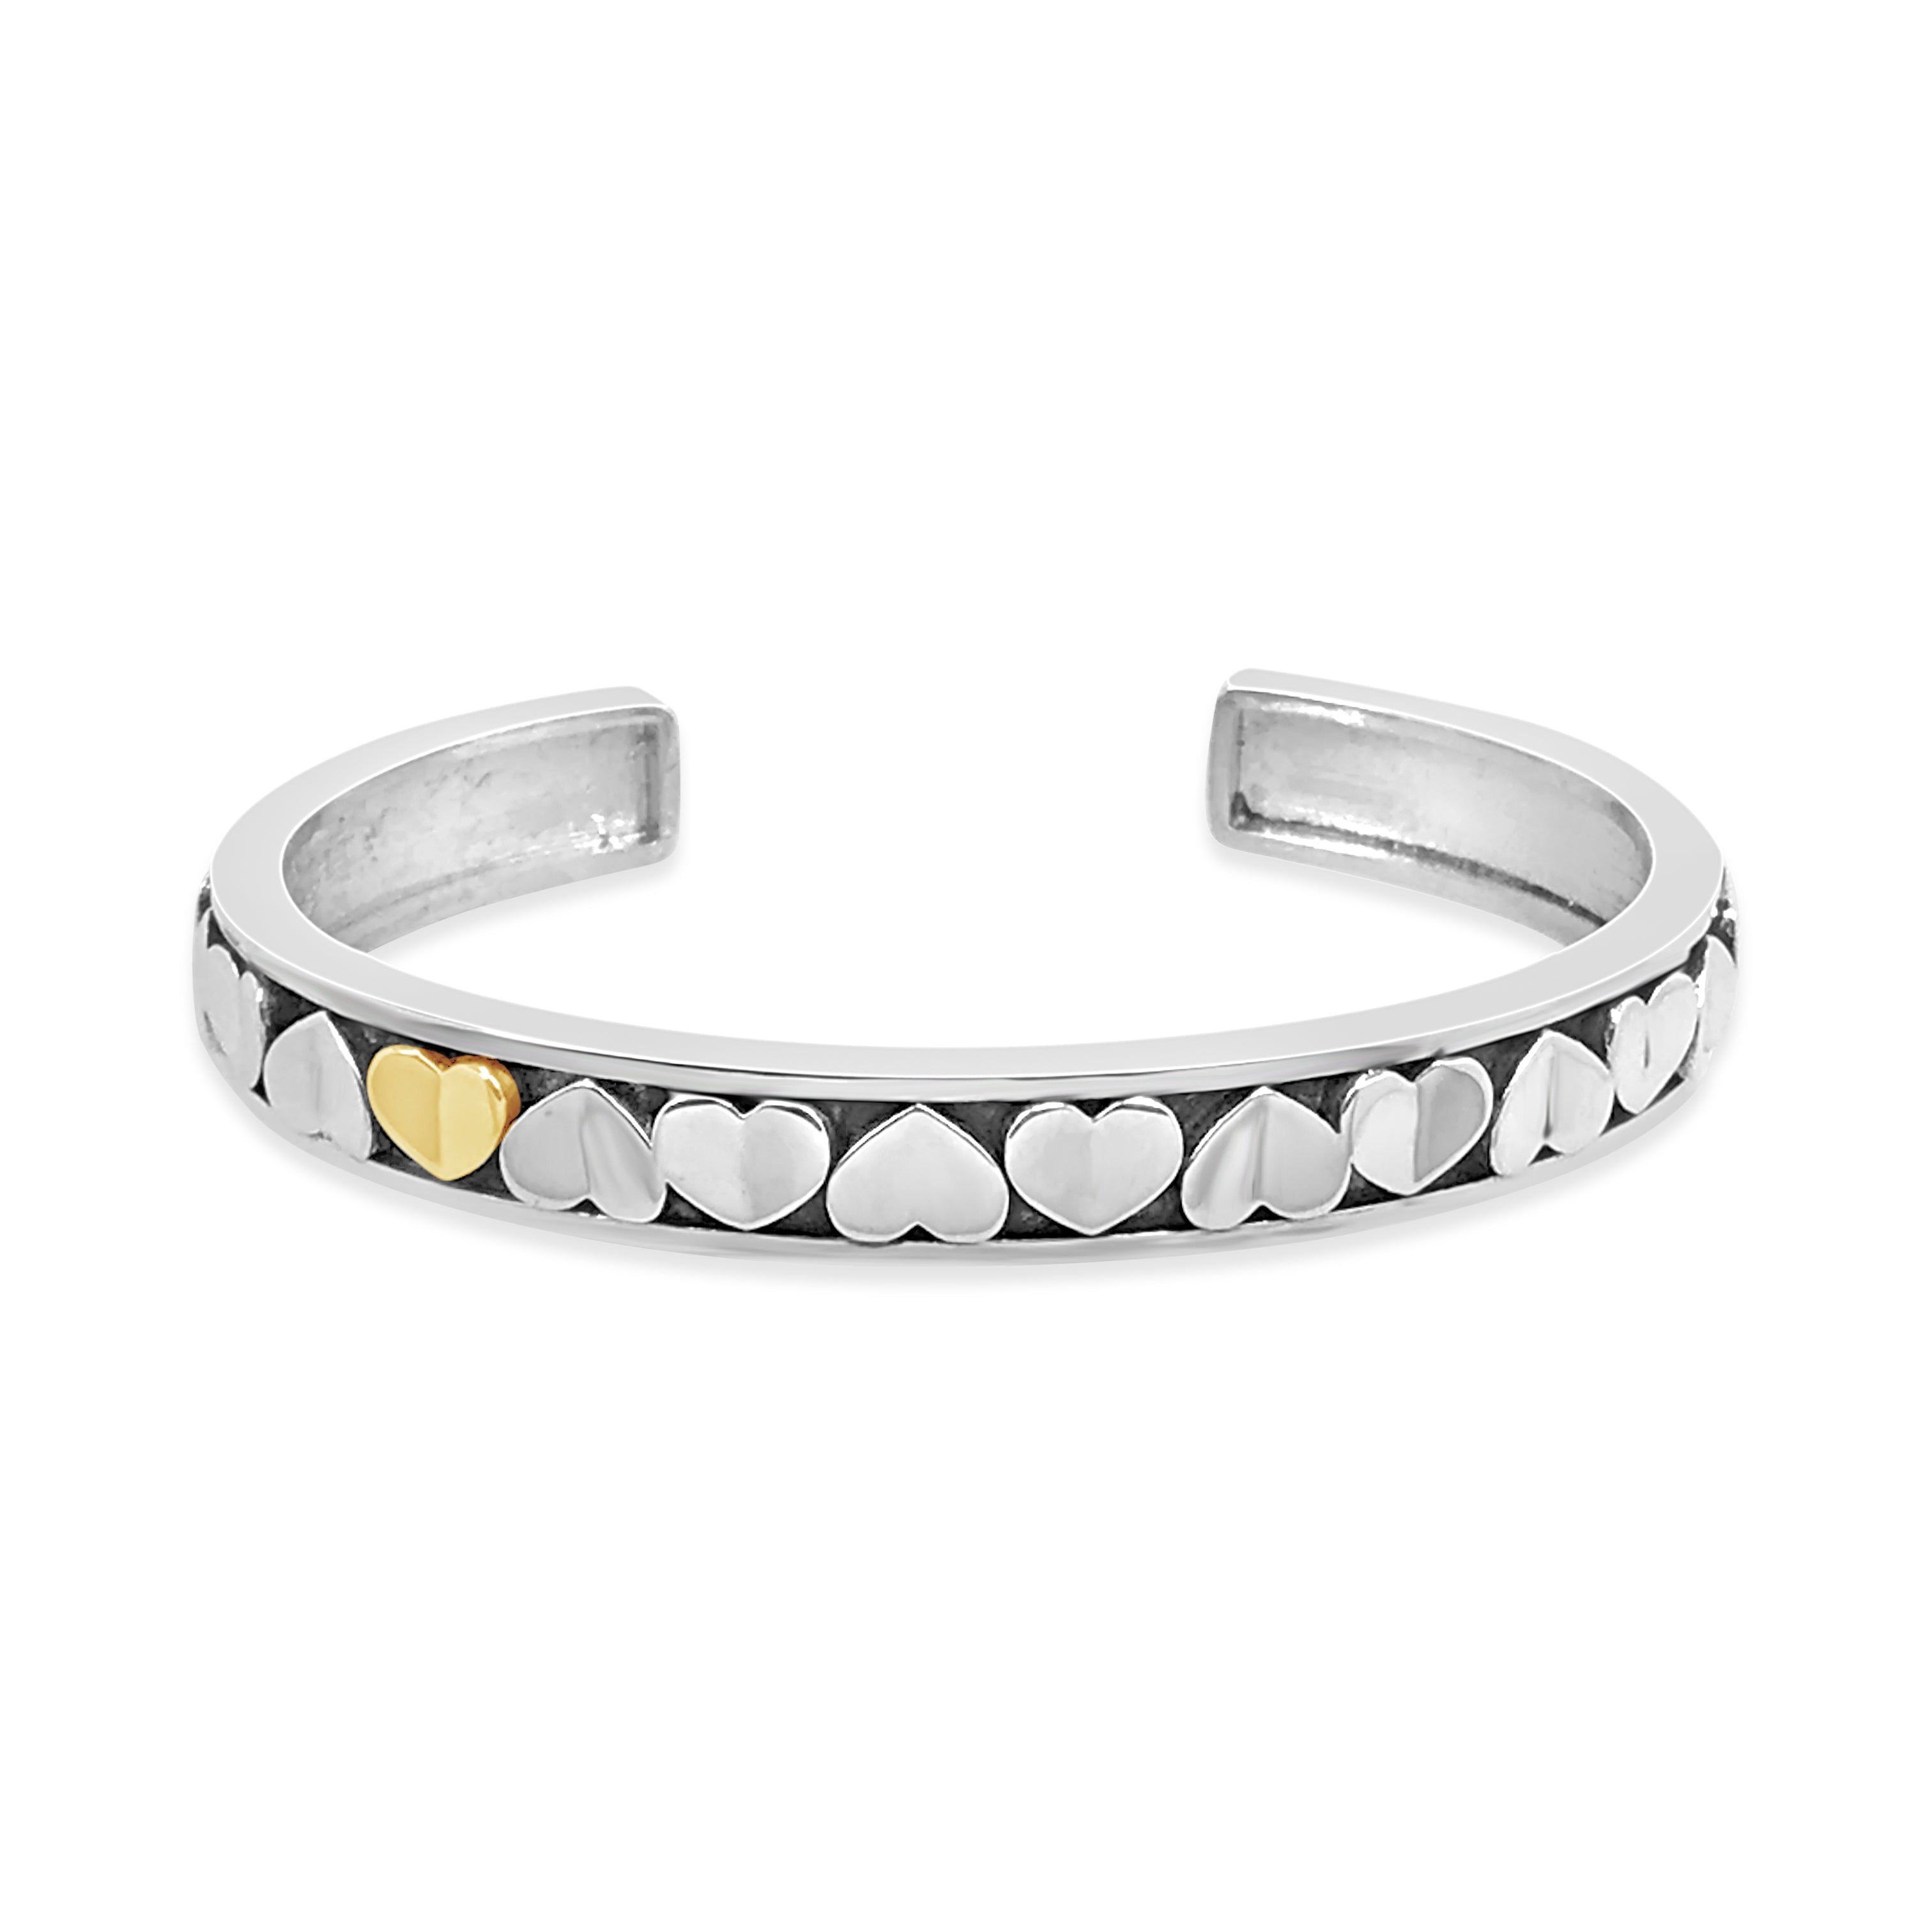 silver love heart love cuff bracelet with one 18k gold heart